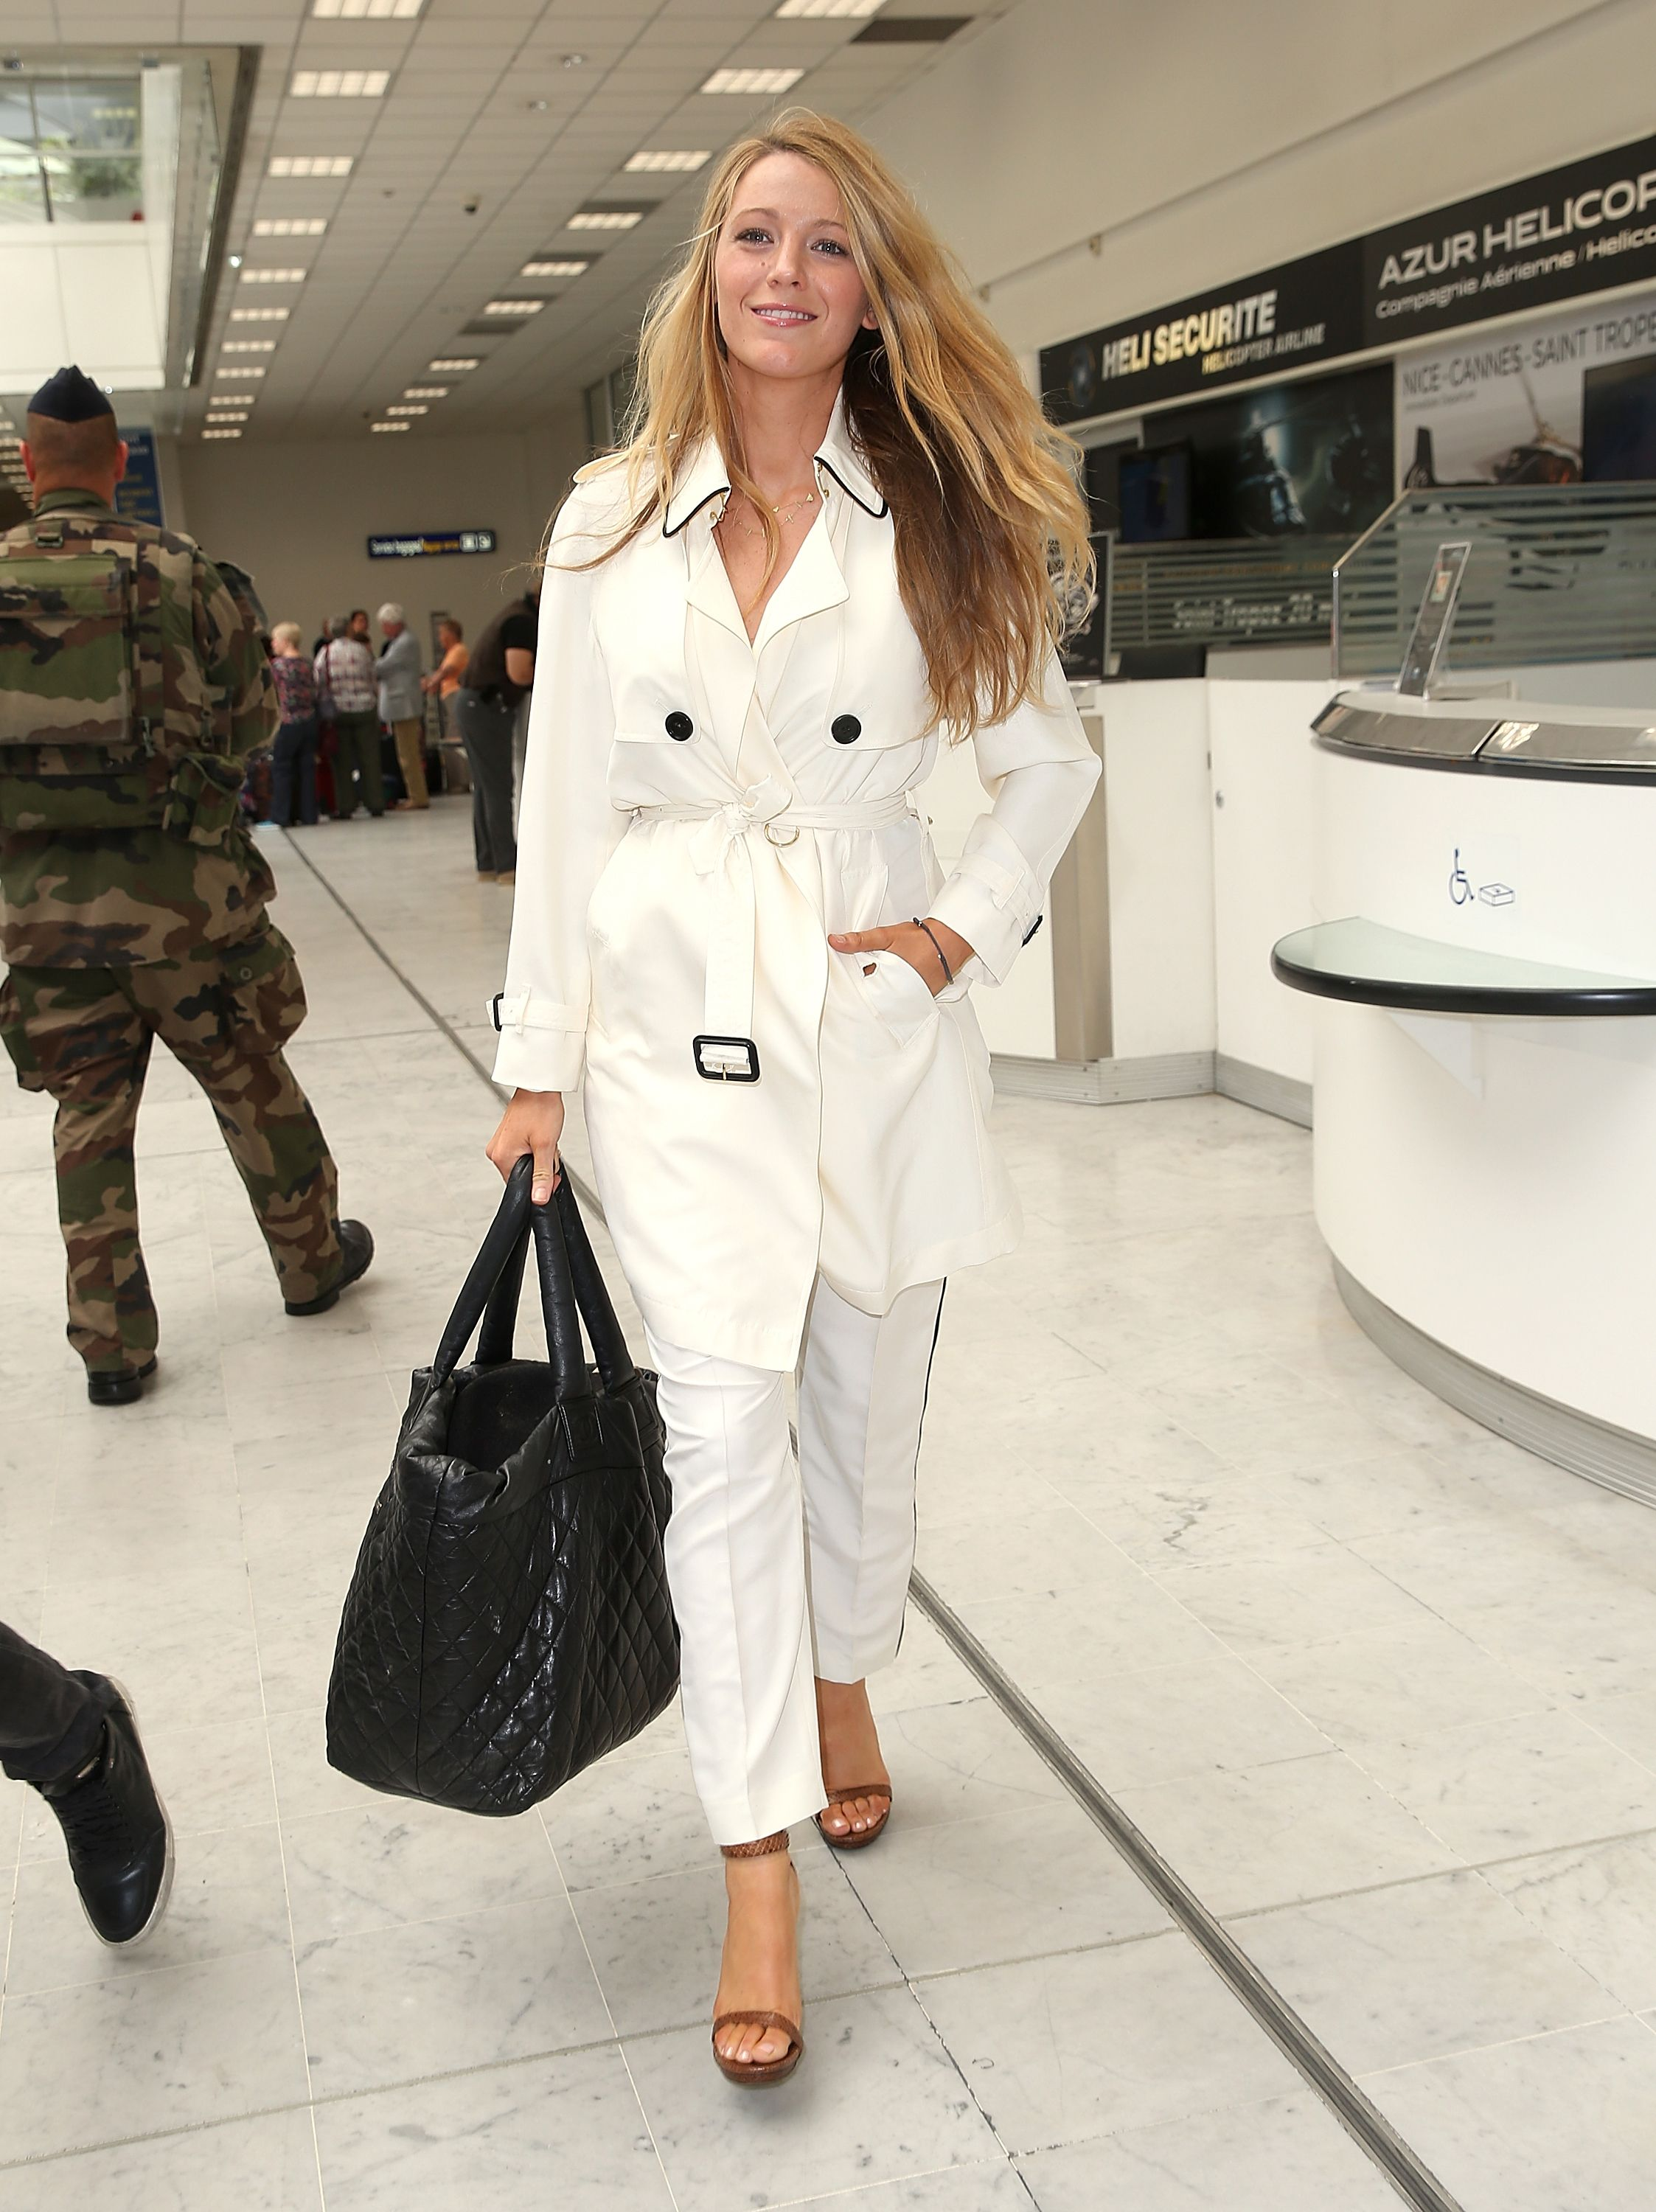 5f5d4f51052d Celebrities Airport Style - Celebs Airport Fashion Photos